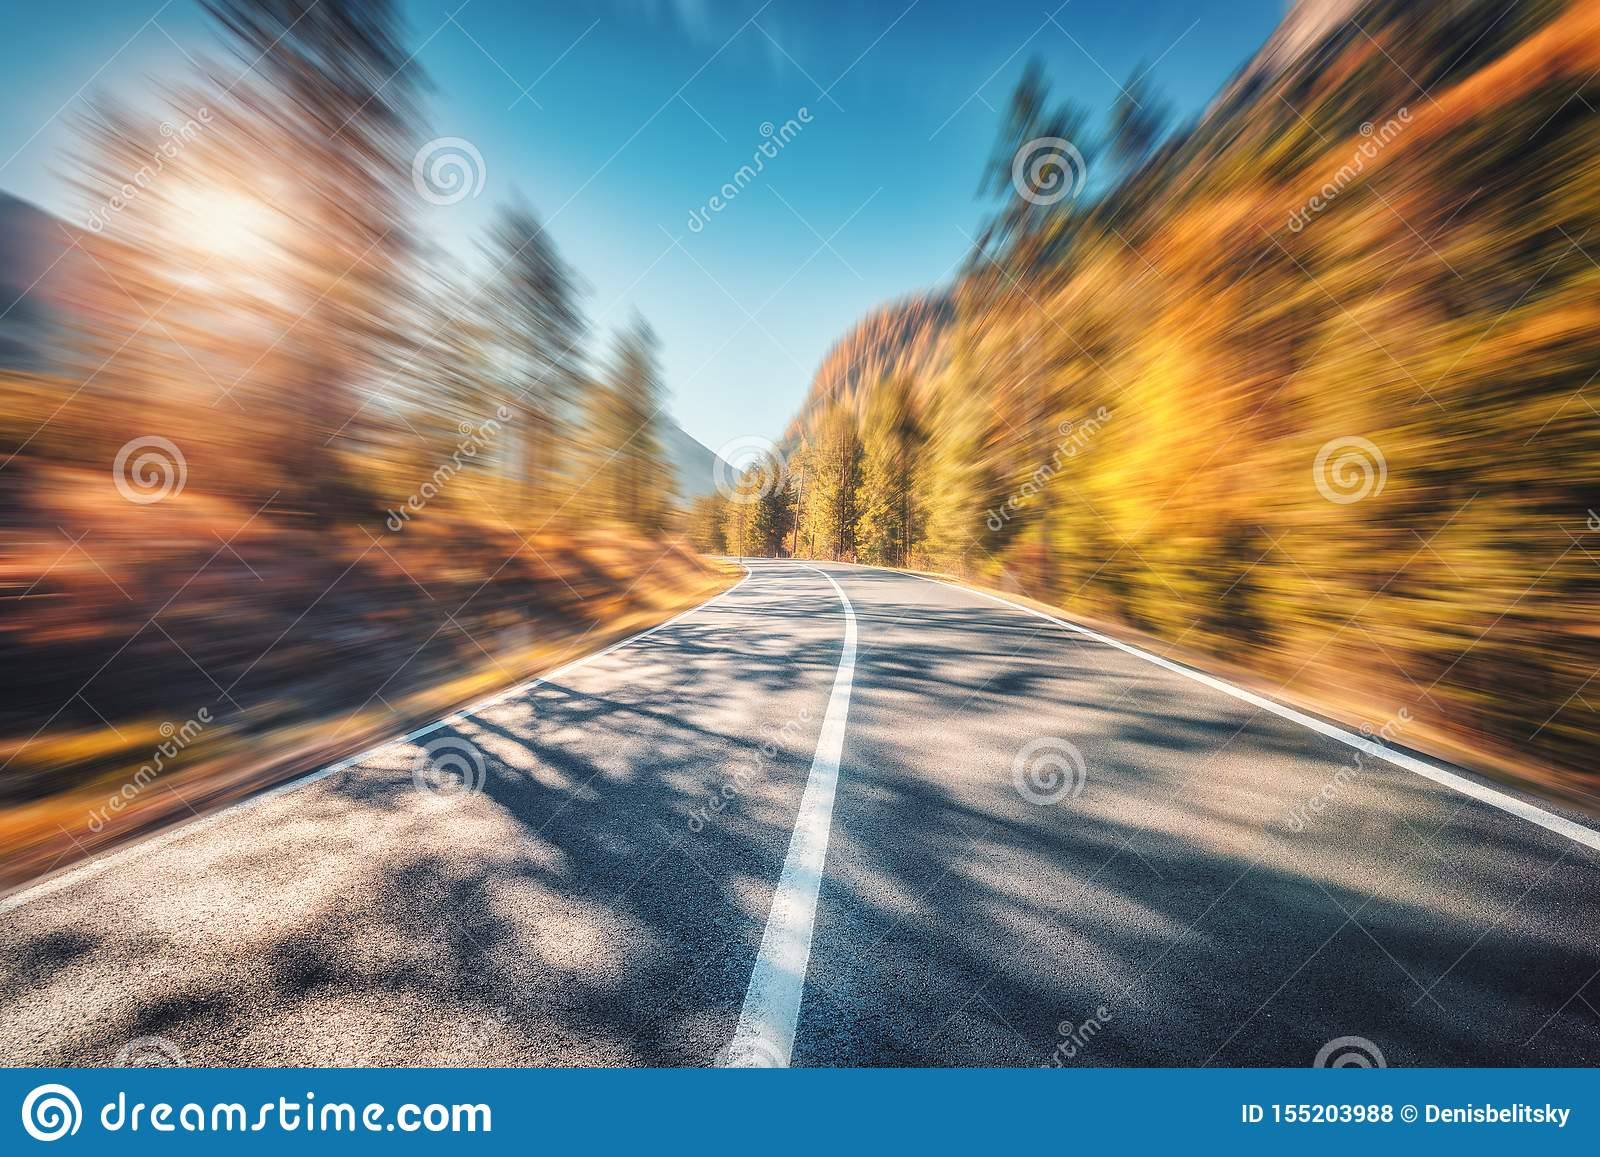 Mountain Road In Autumn Forest At Sunset With Motion Blur Effect Stock Photo Image Of Nature Concept 155203988